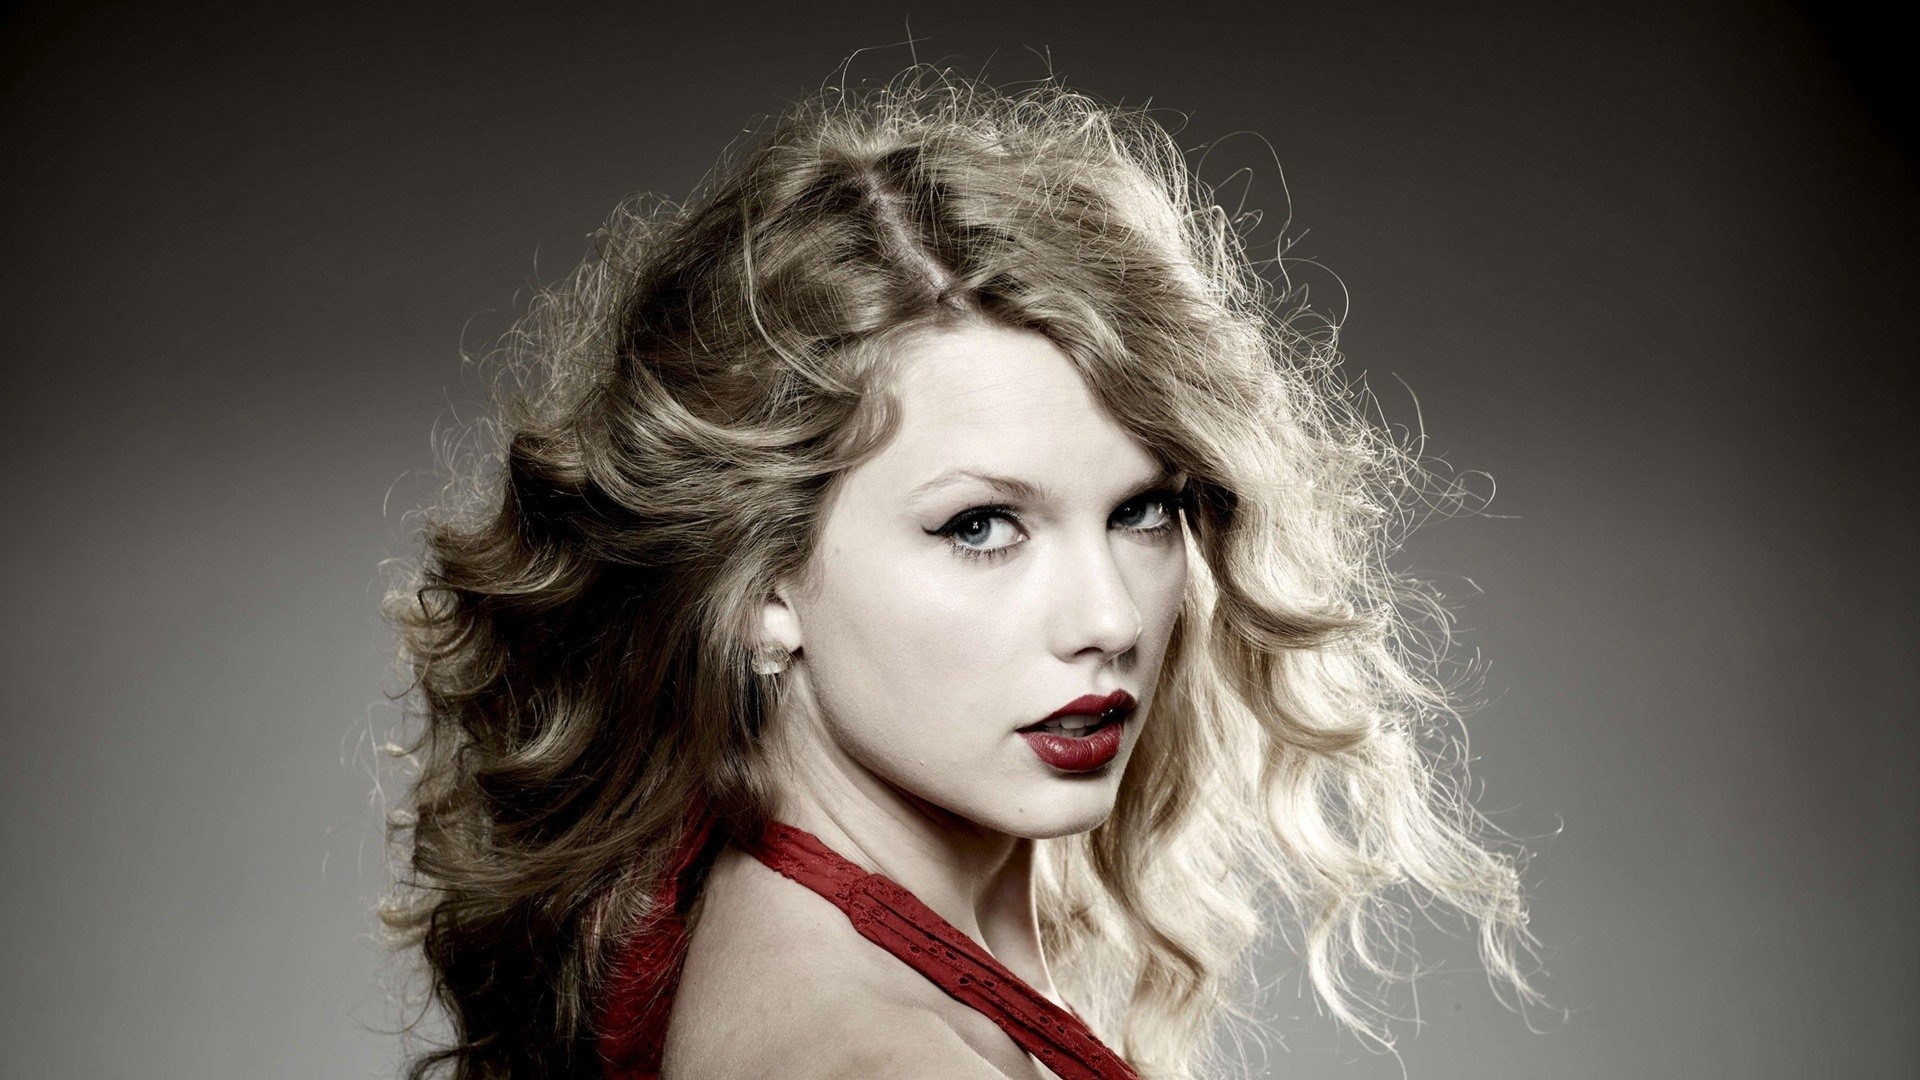 Taylor Swift Backgrounds Pictures Images 1920x1080